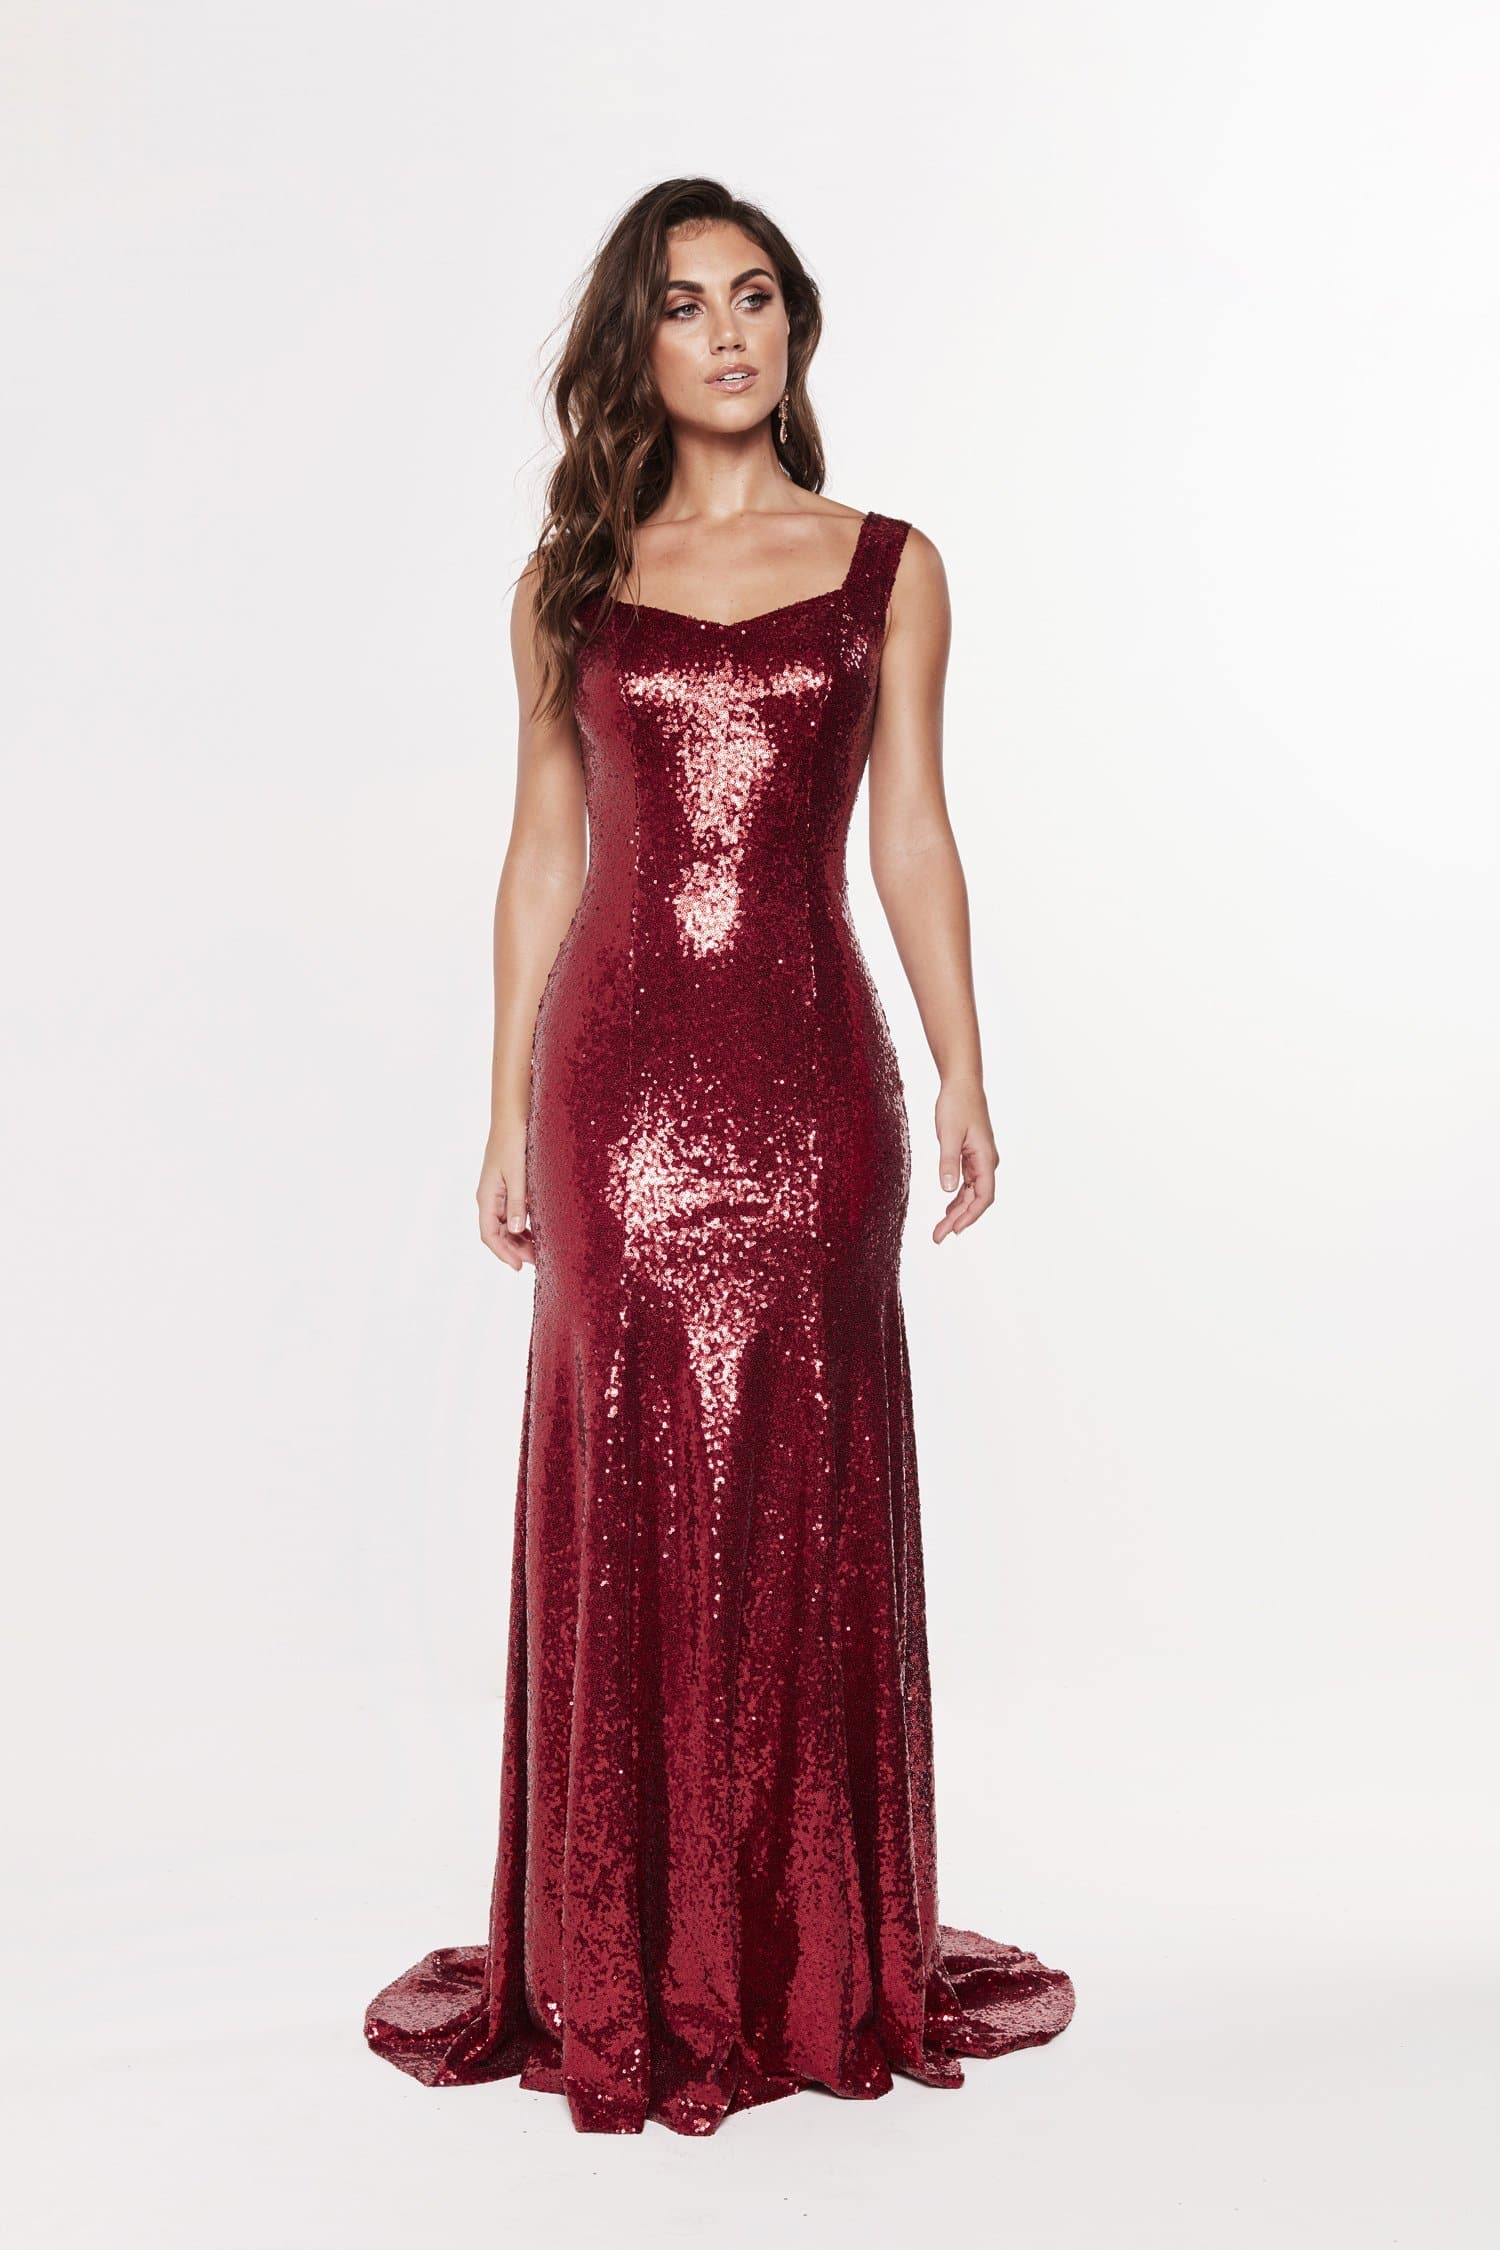 A&N Luxe Georgie Sequins Gown - Deep Red